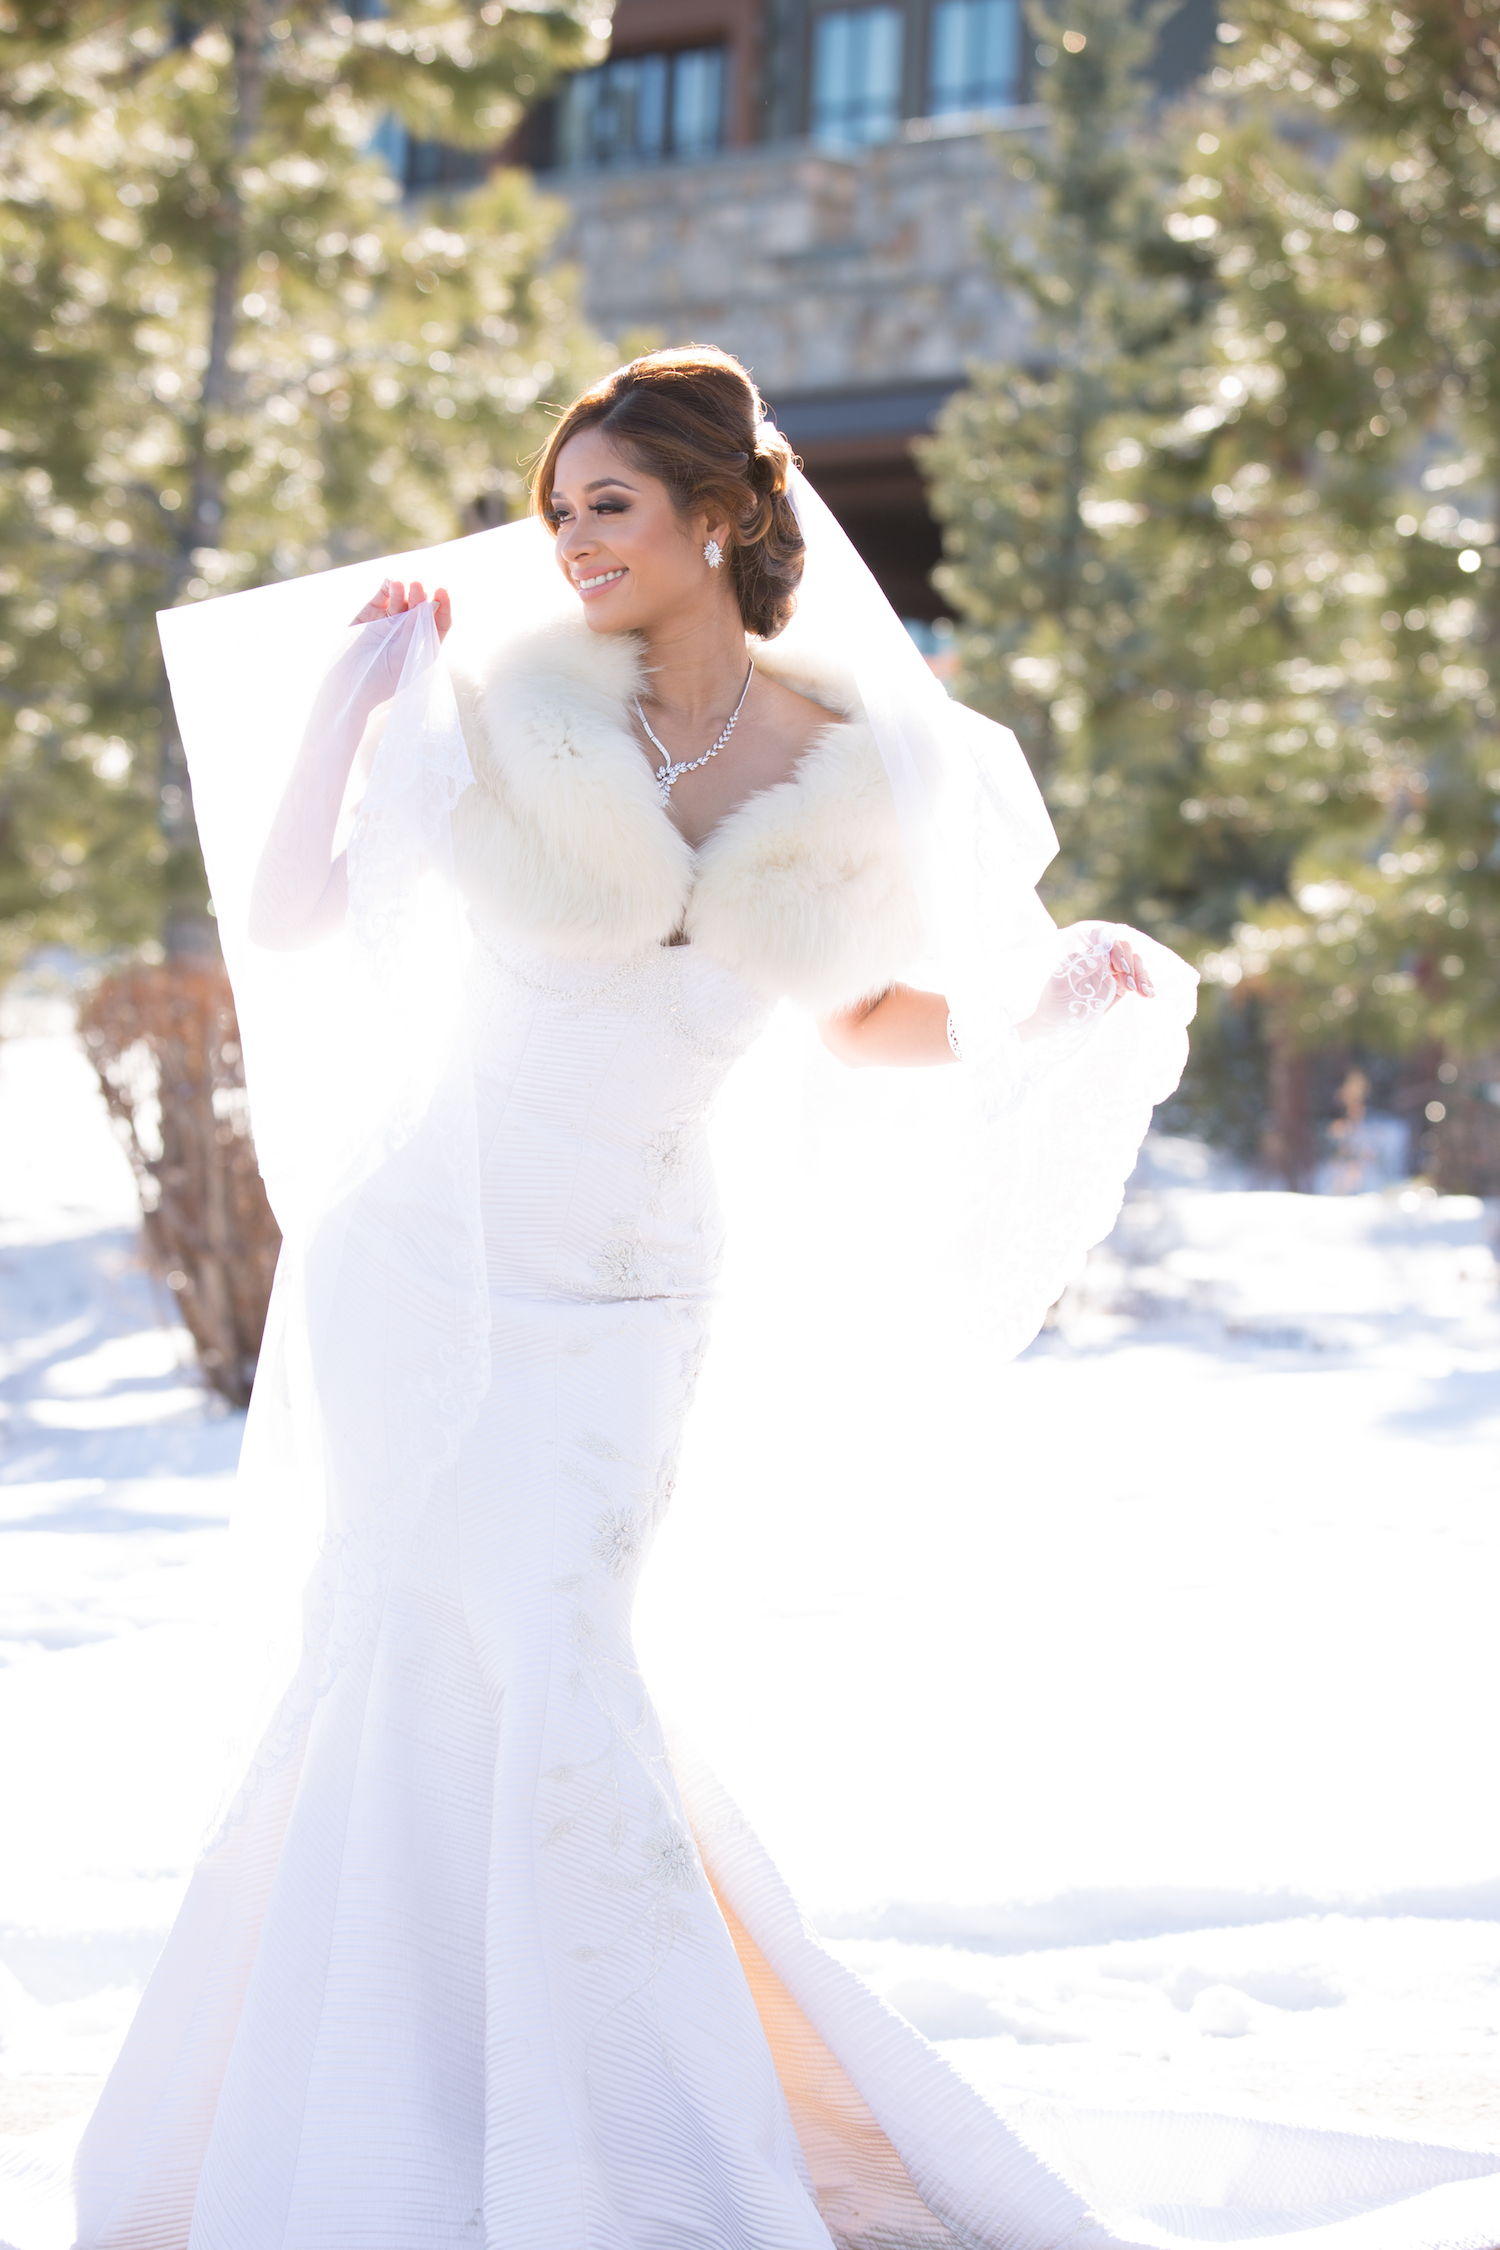 Winter Wedding At Ritz Carlton Lake Tahoe